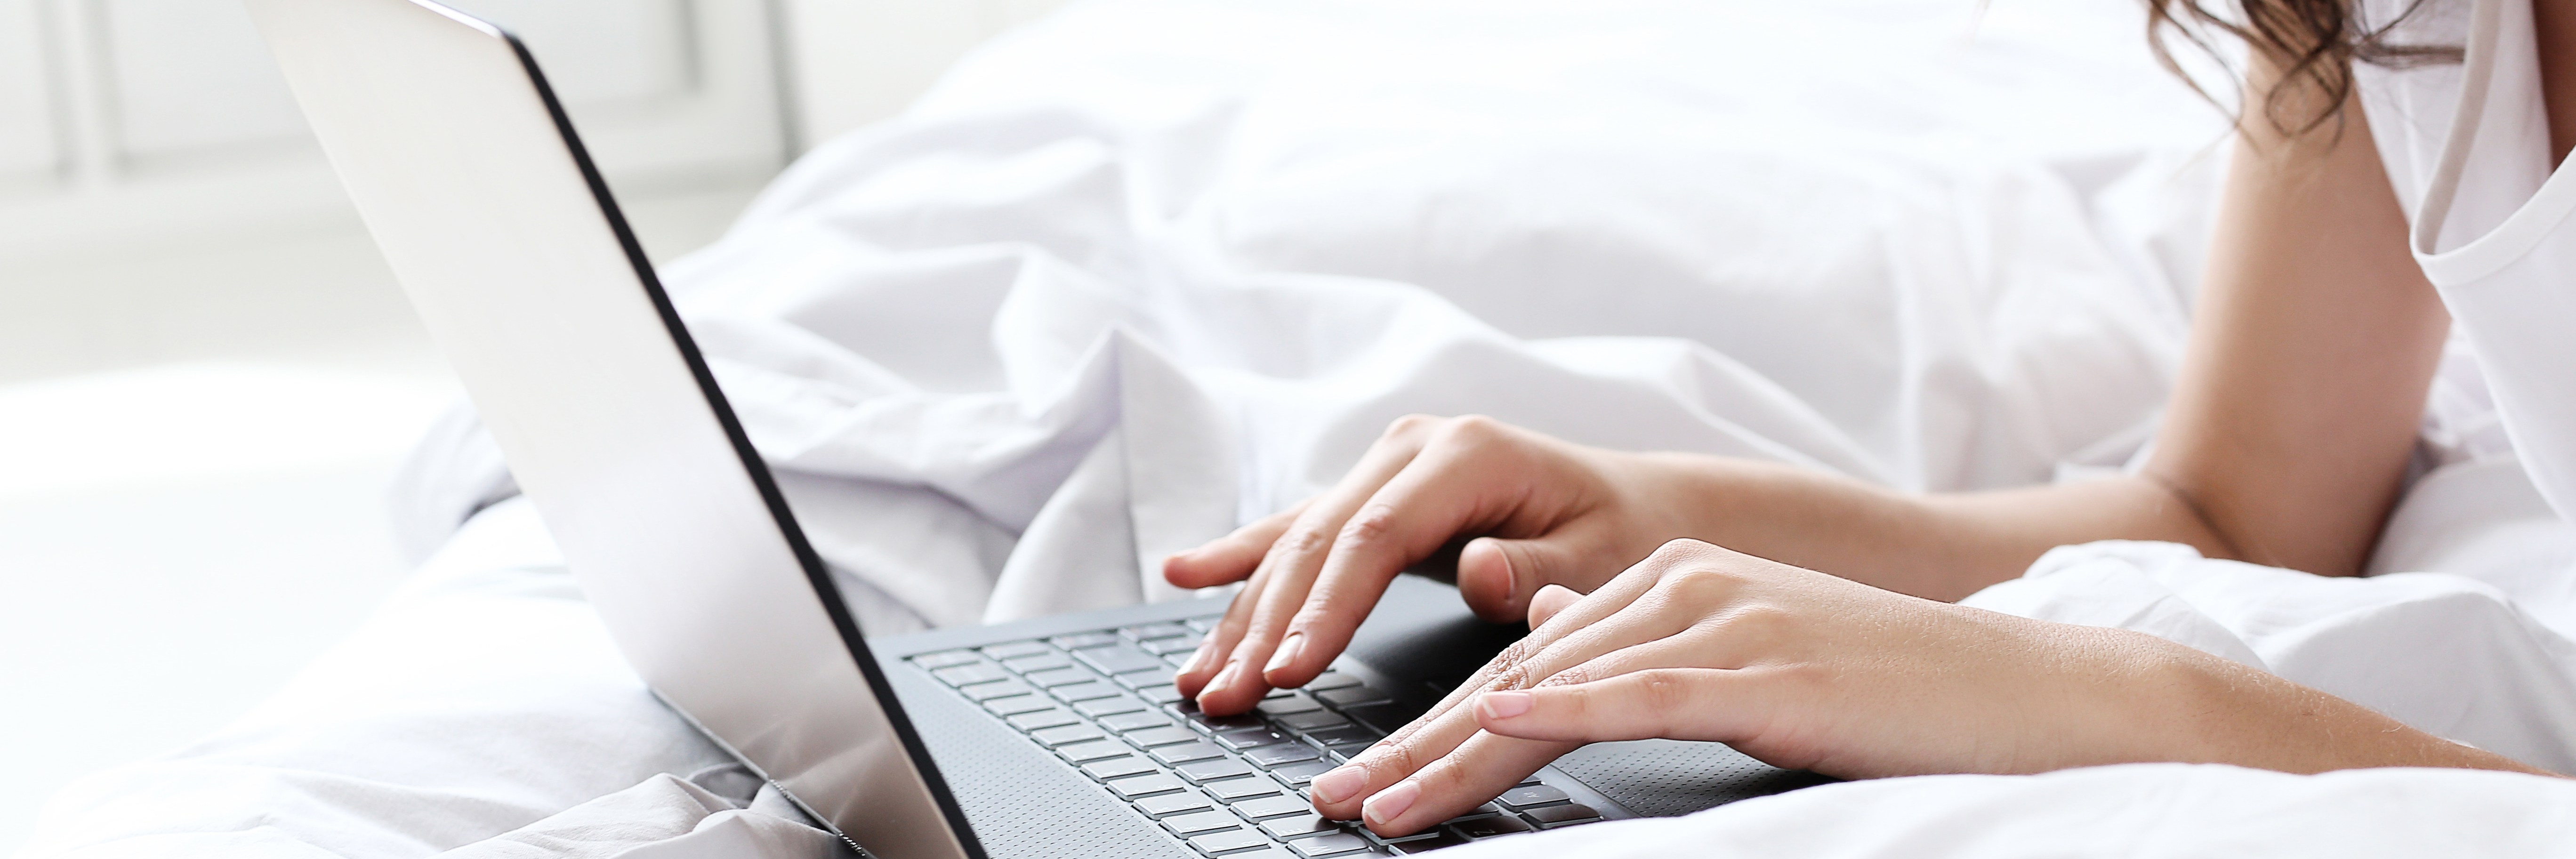 close up of woman working on laptop while lying on bed